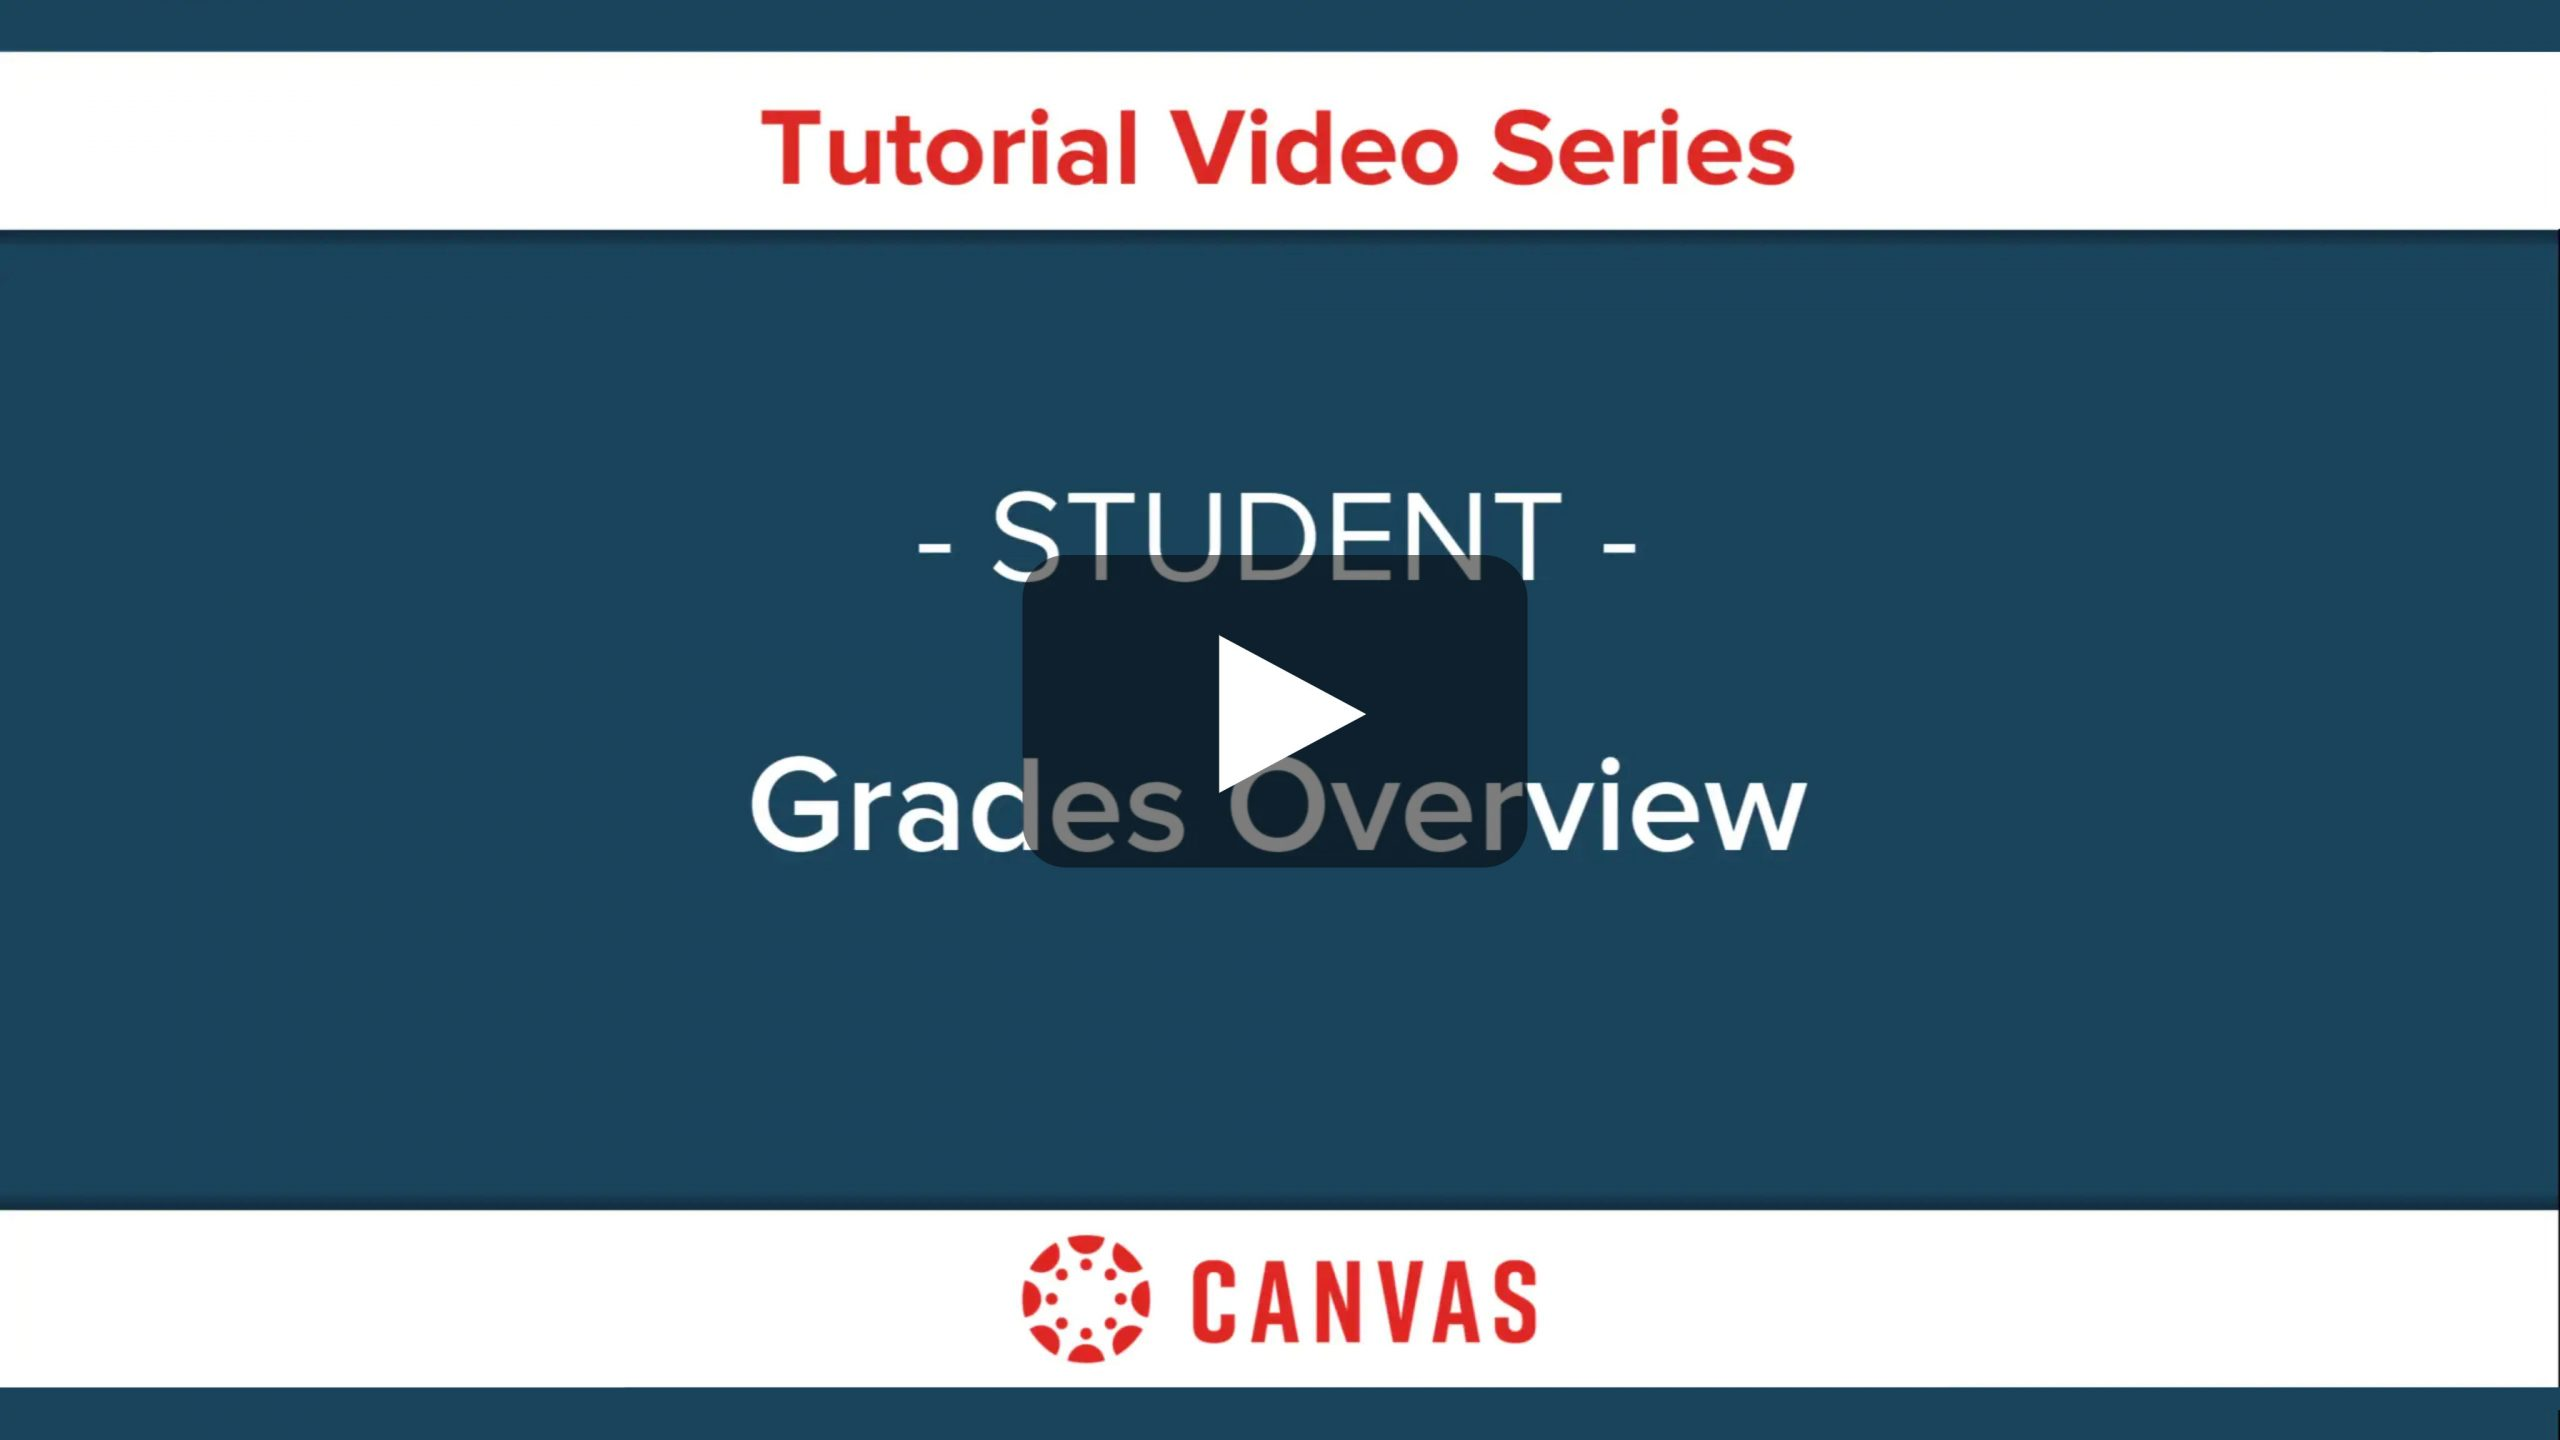 Students - Canvas Grades Overview Video